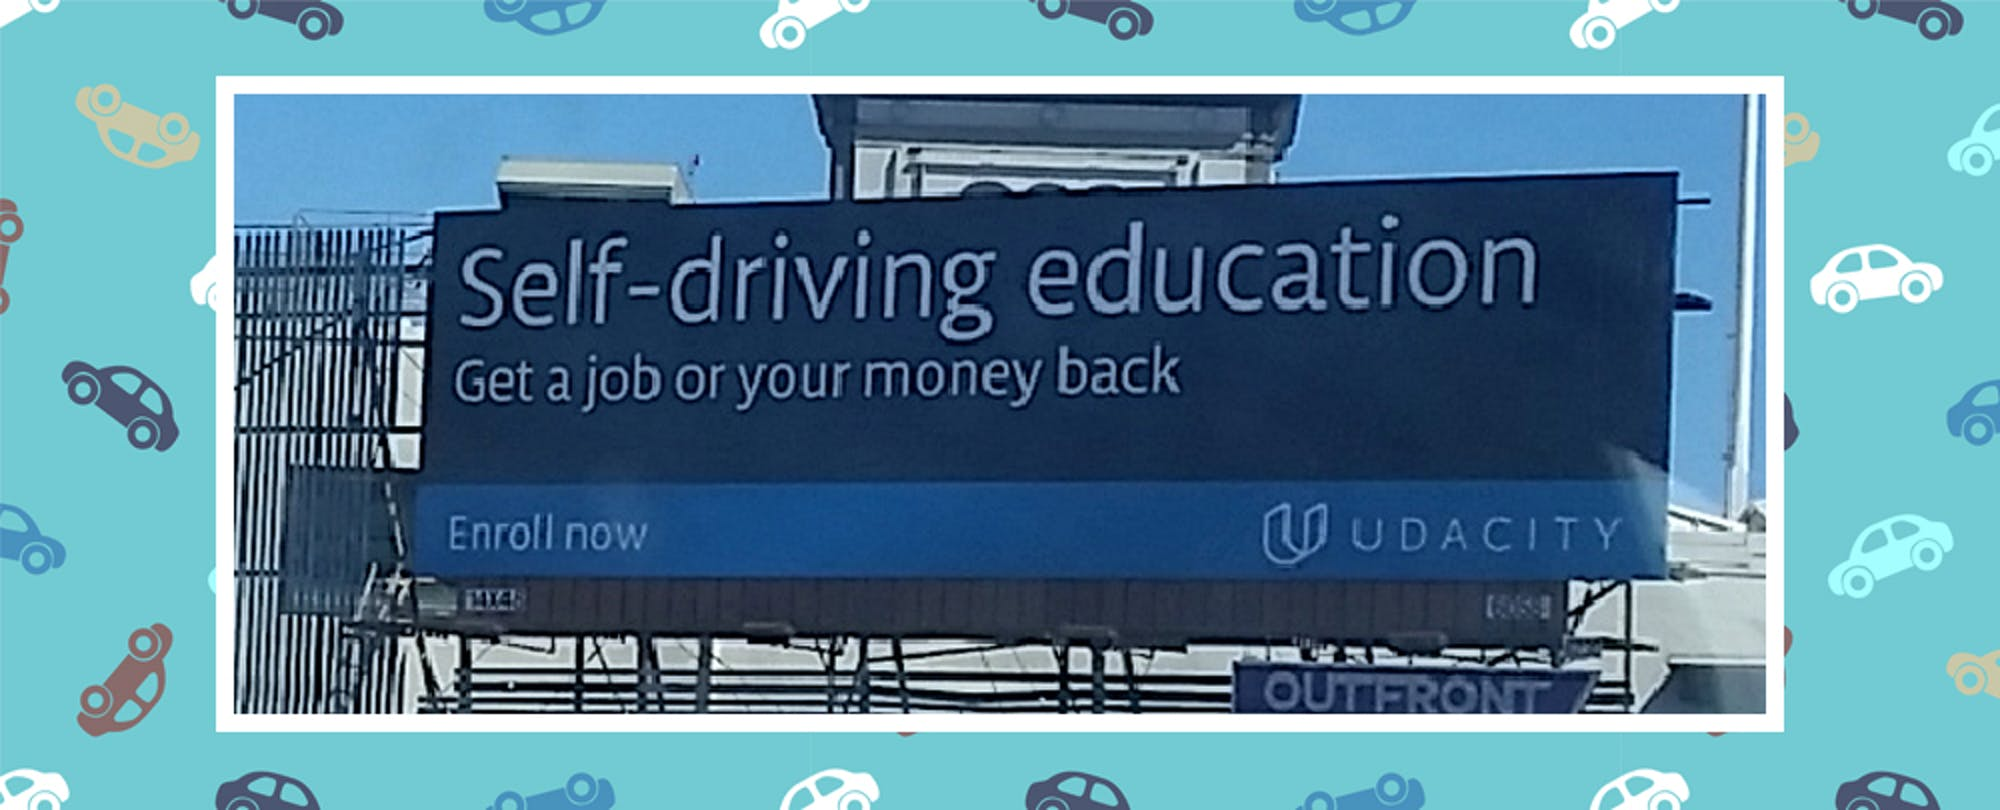 Udacity Teams Up With Mercedes-Benz to Offer Self-Driving Education (Literally)